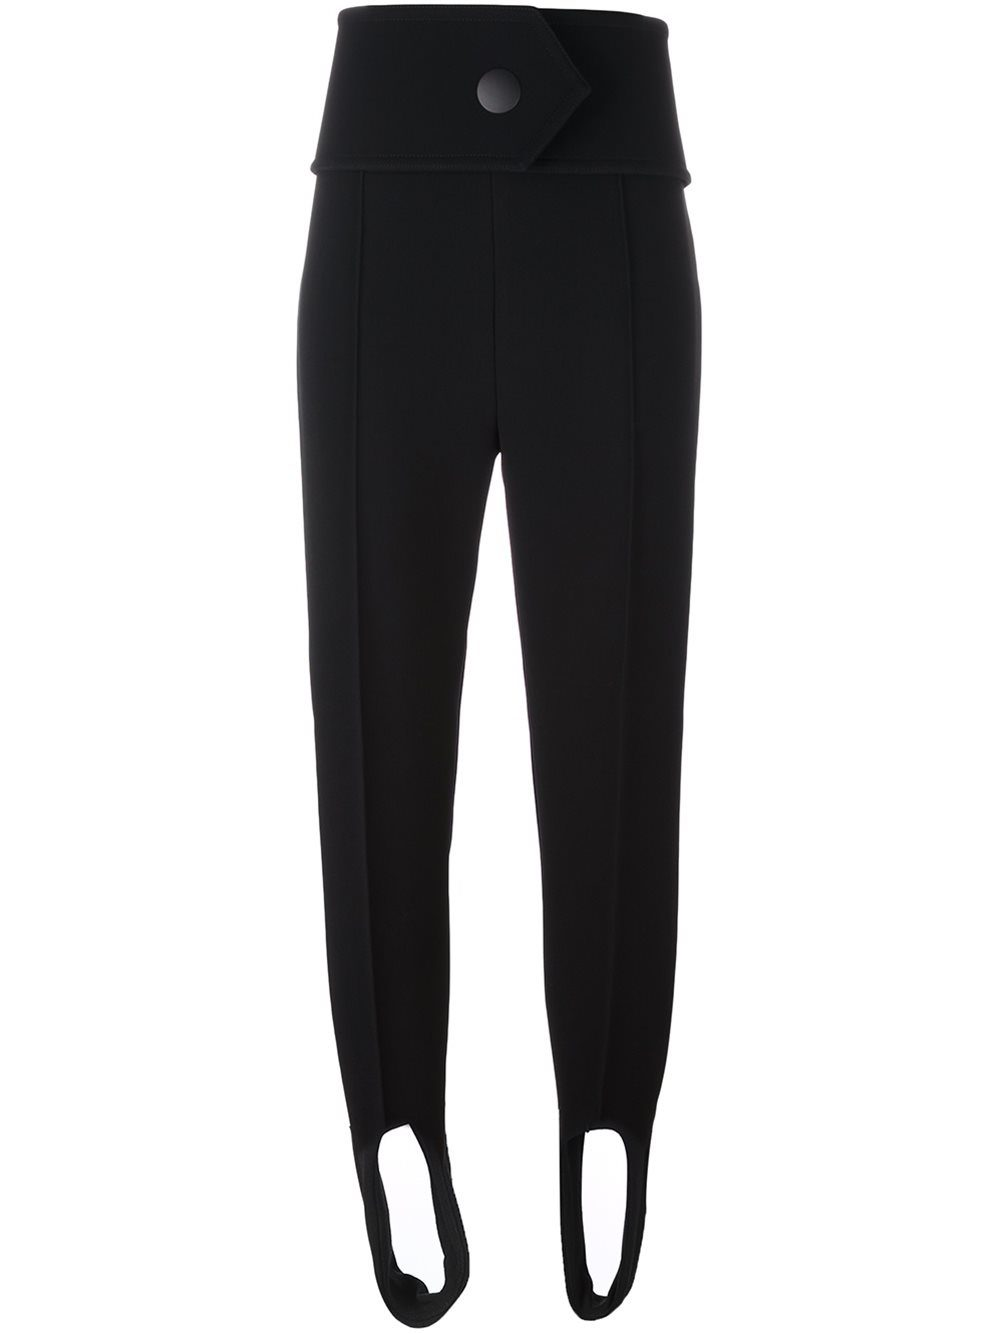 stirrup trousers